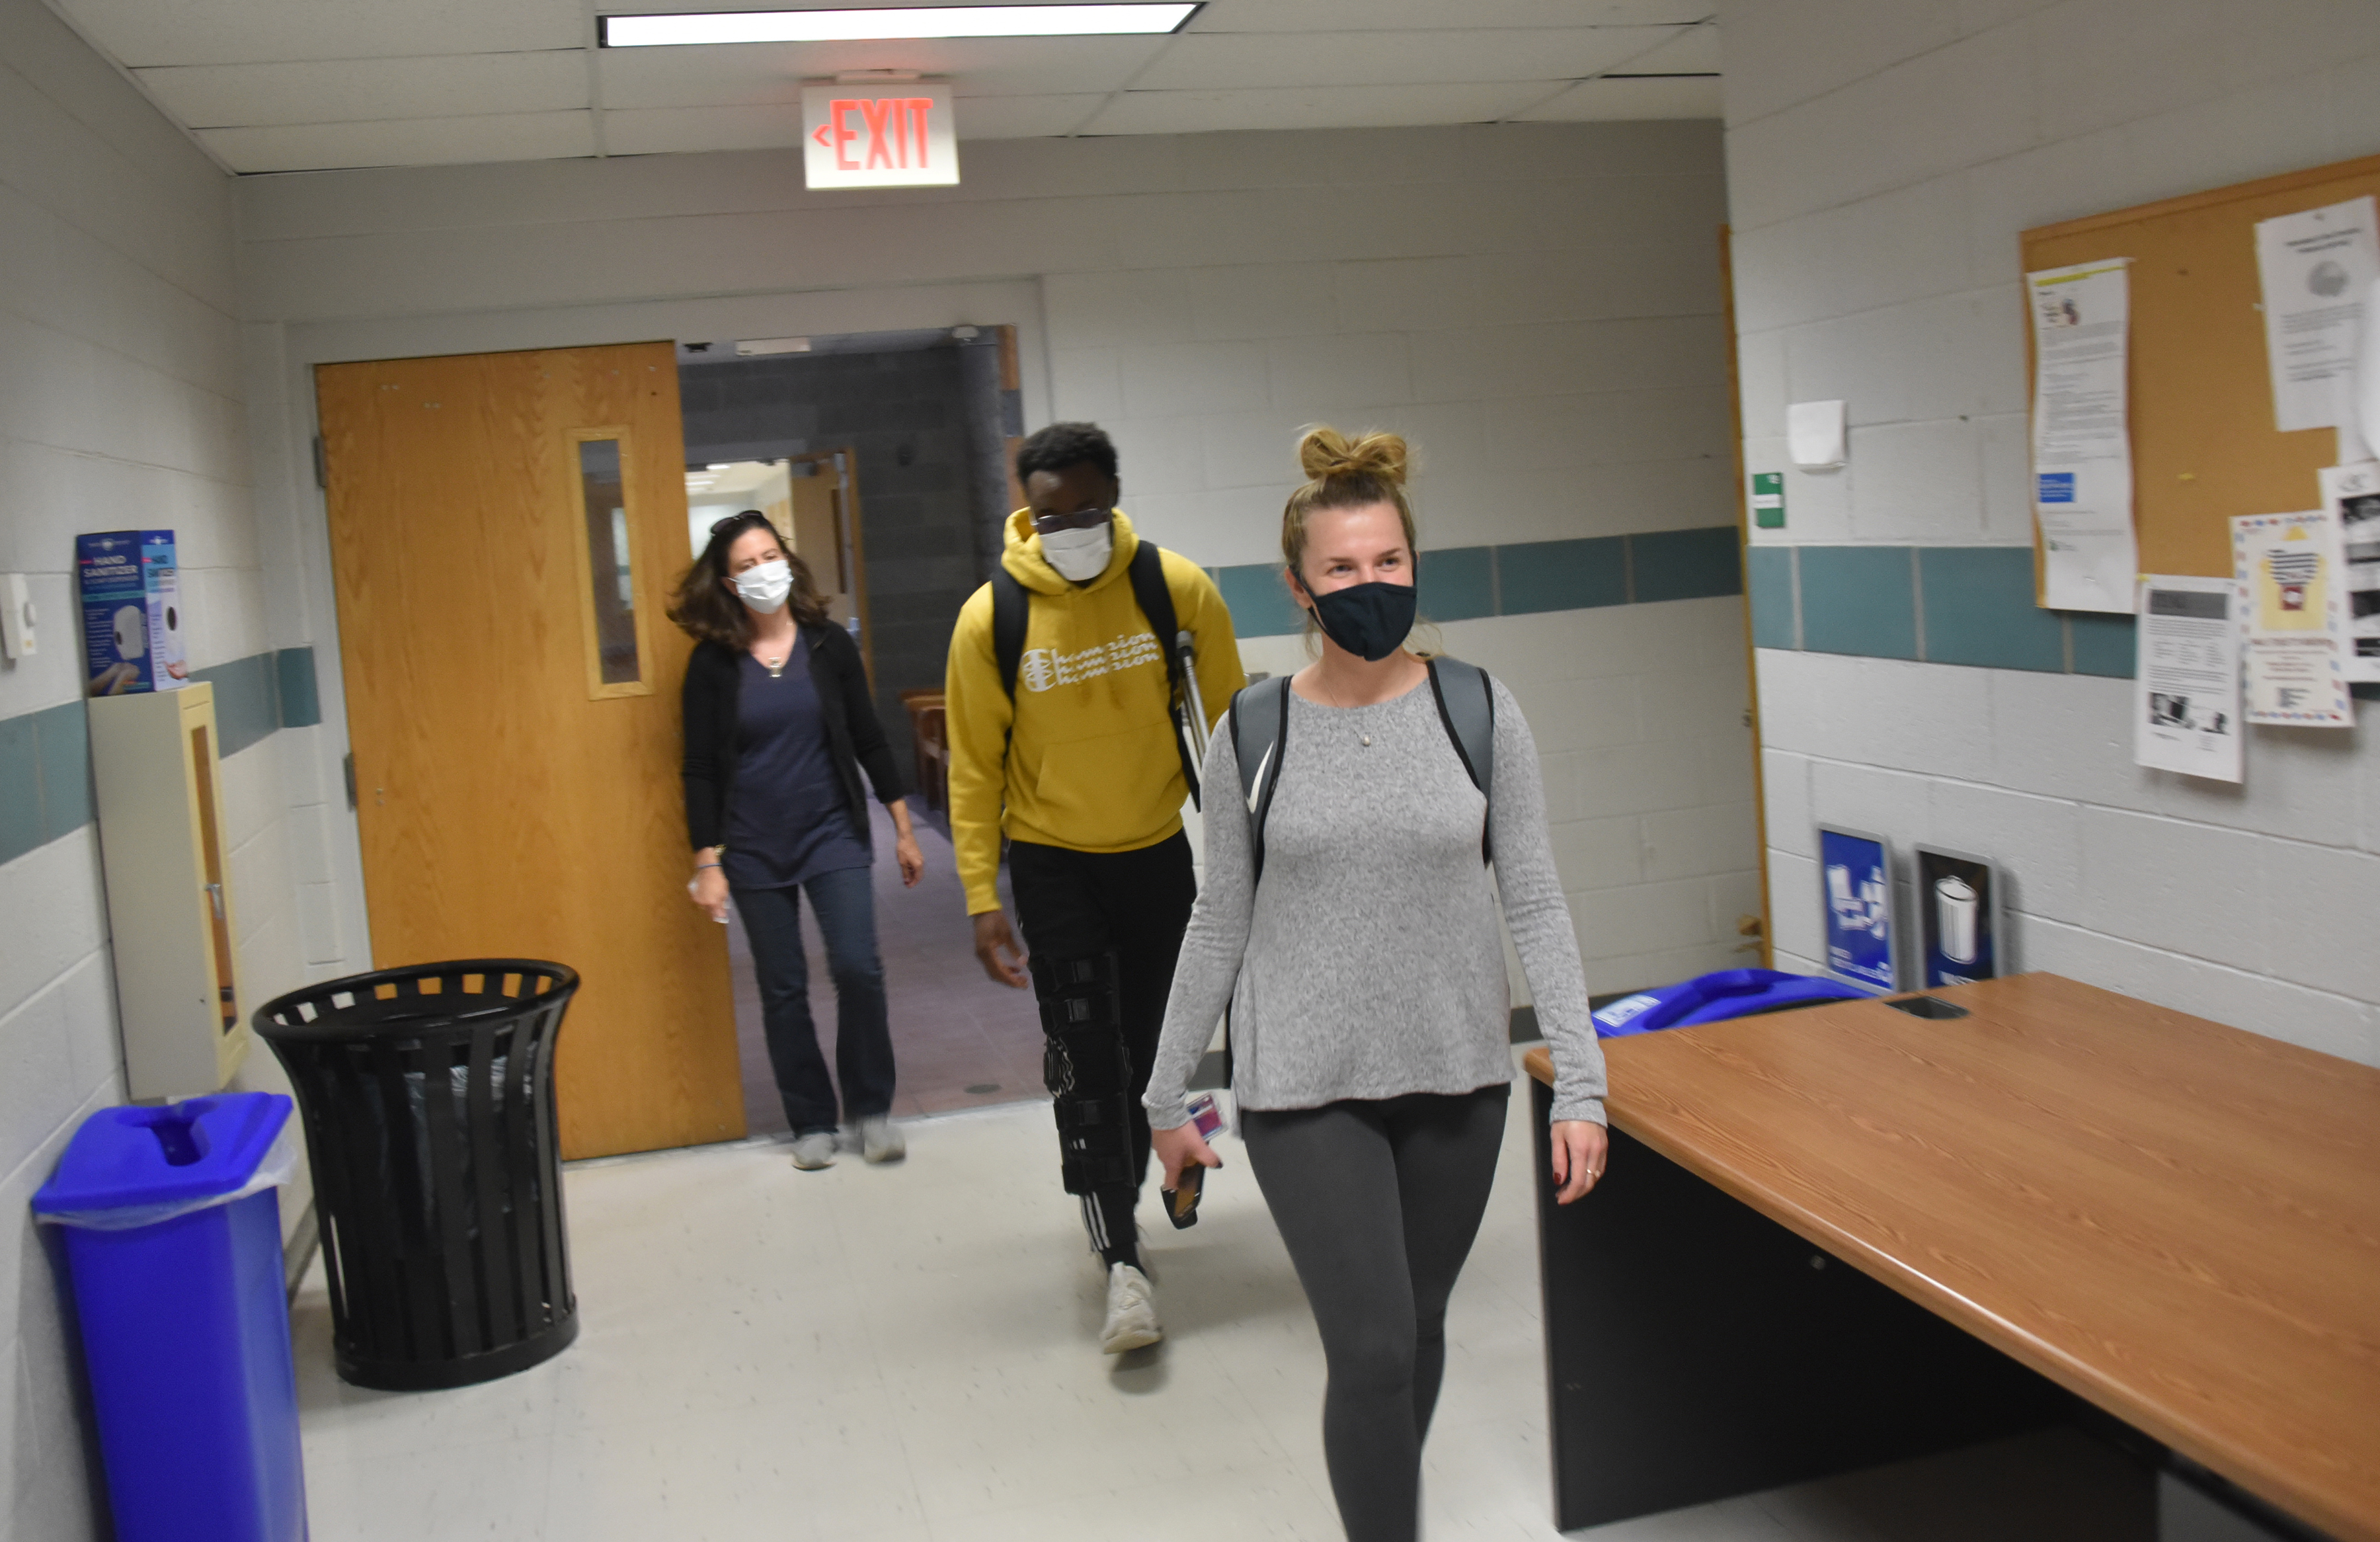 Univ. kept safe during pandemic; latest enrollment figures